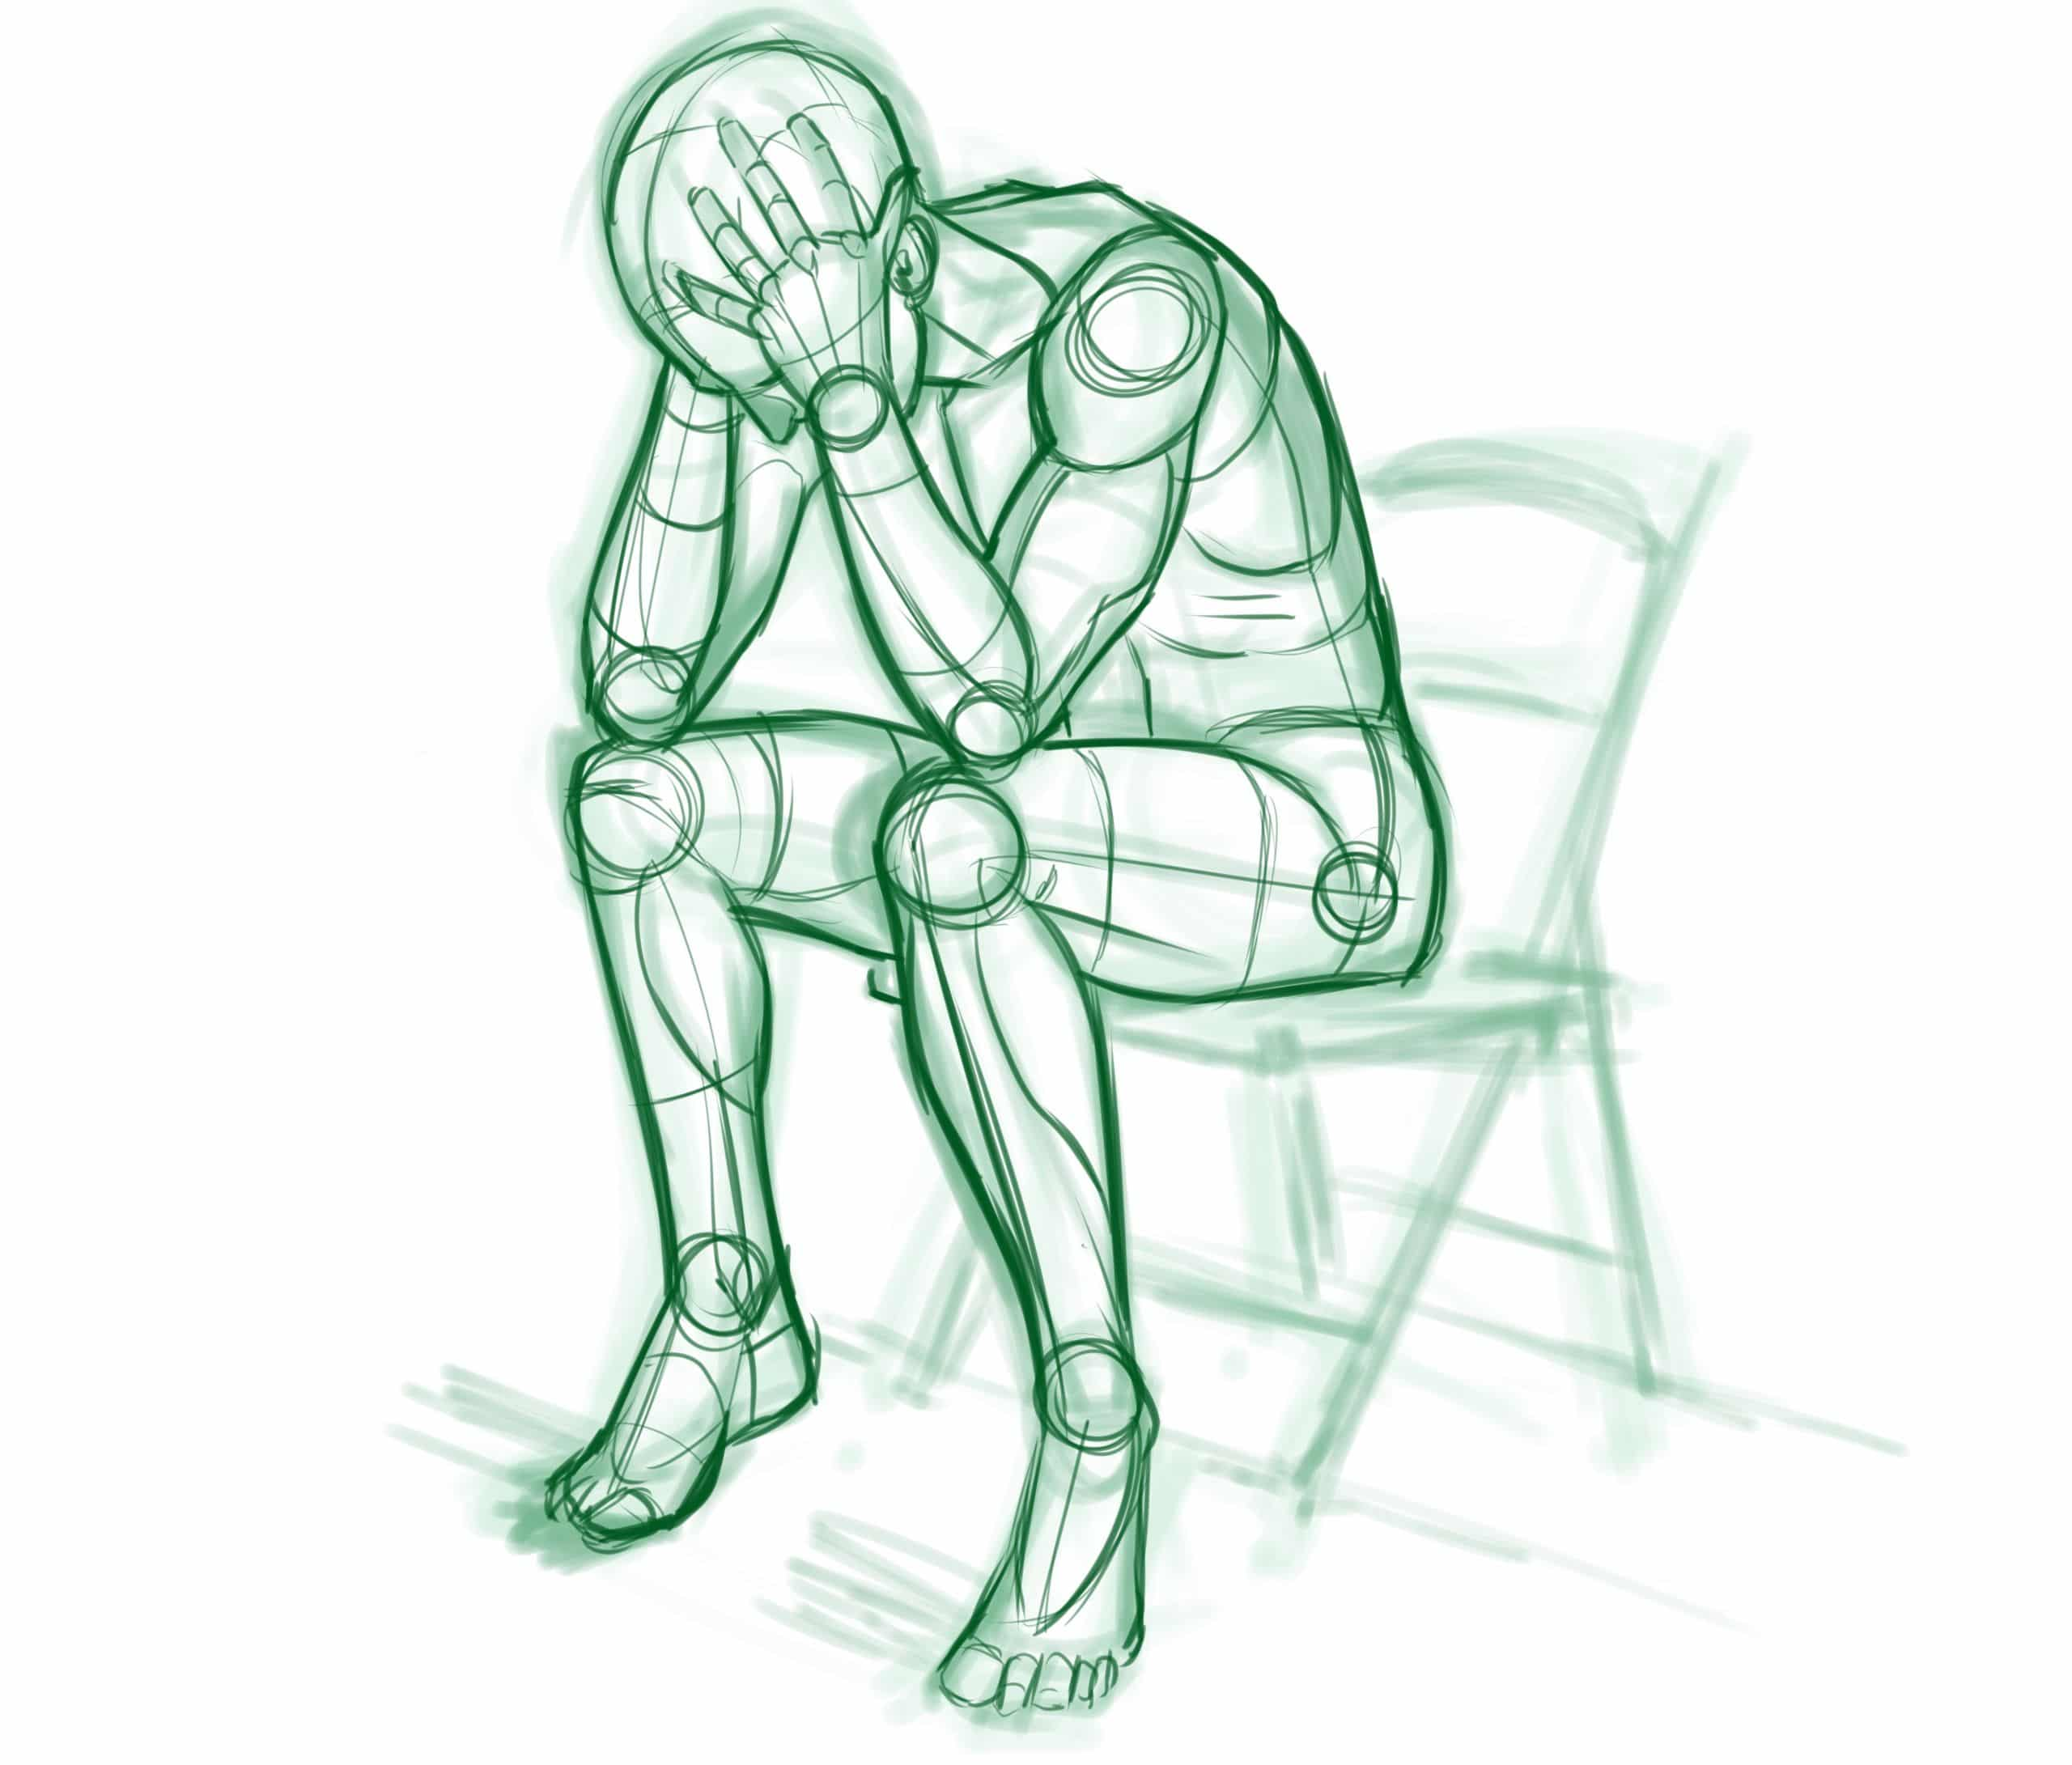 illustration of man sitting on chair holding his head in a crisis